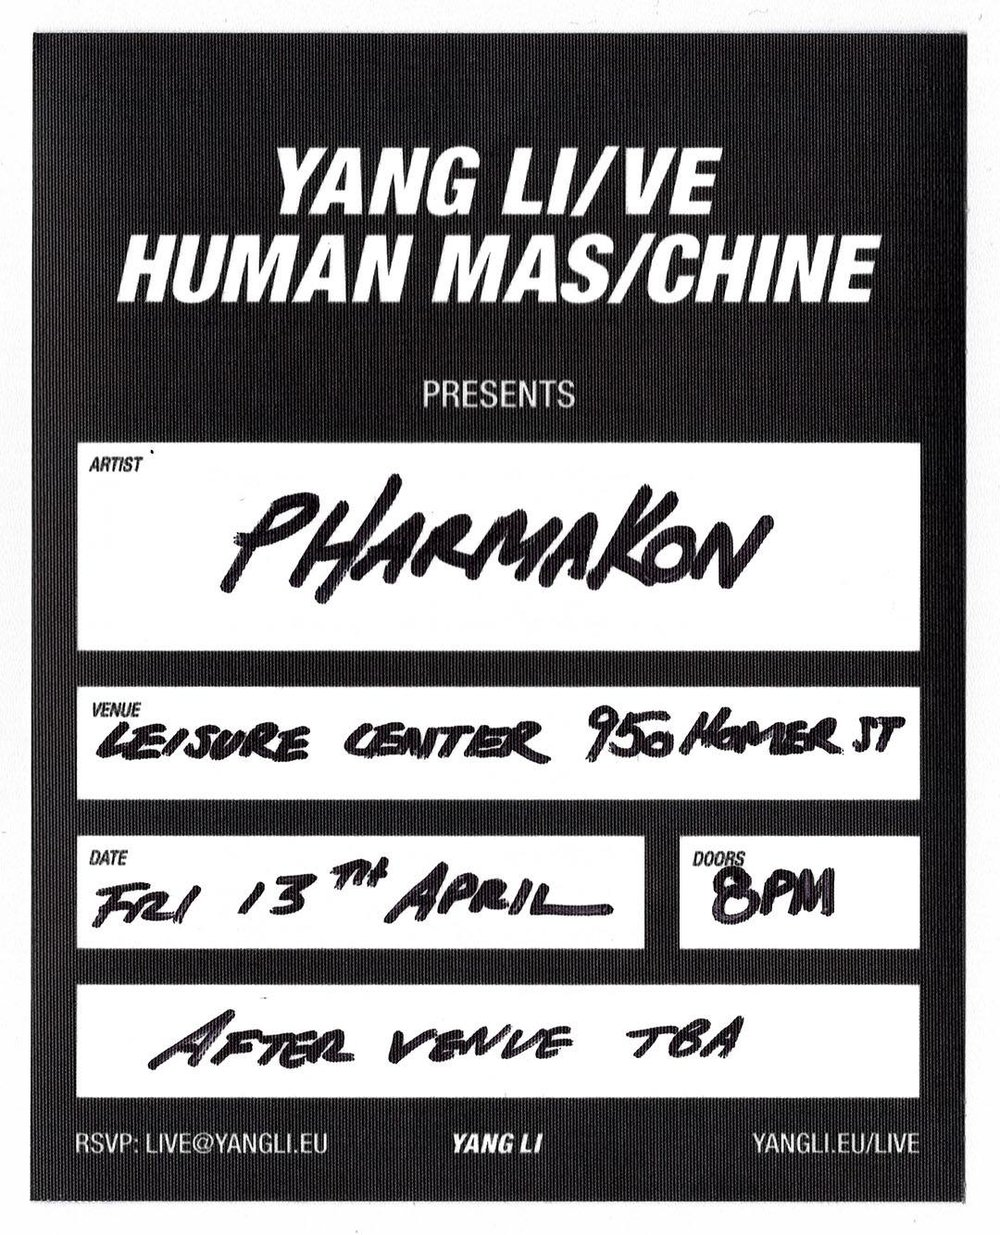 JS—A —Vancouver—Solo DJ at YANG LI presents Pharmakon